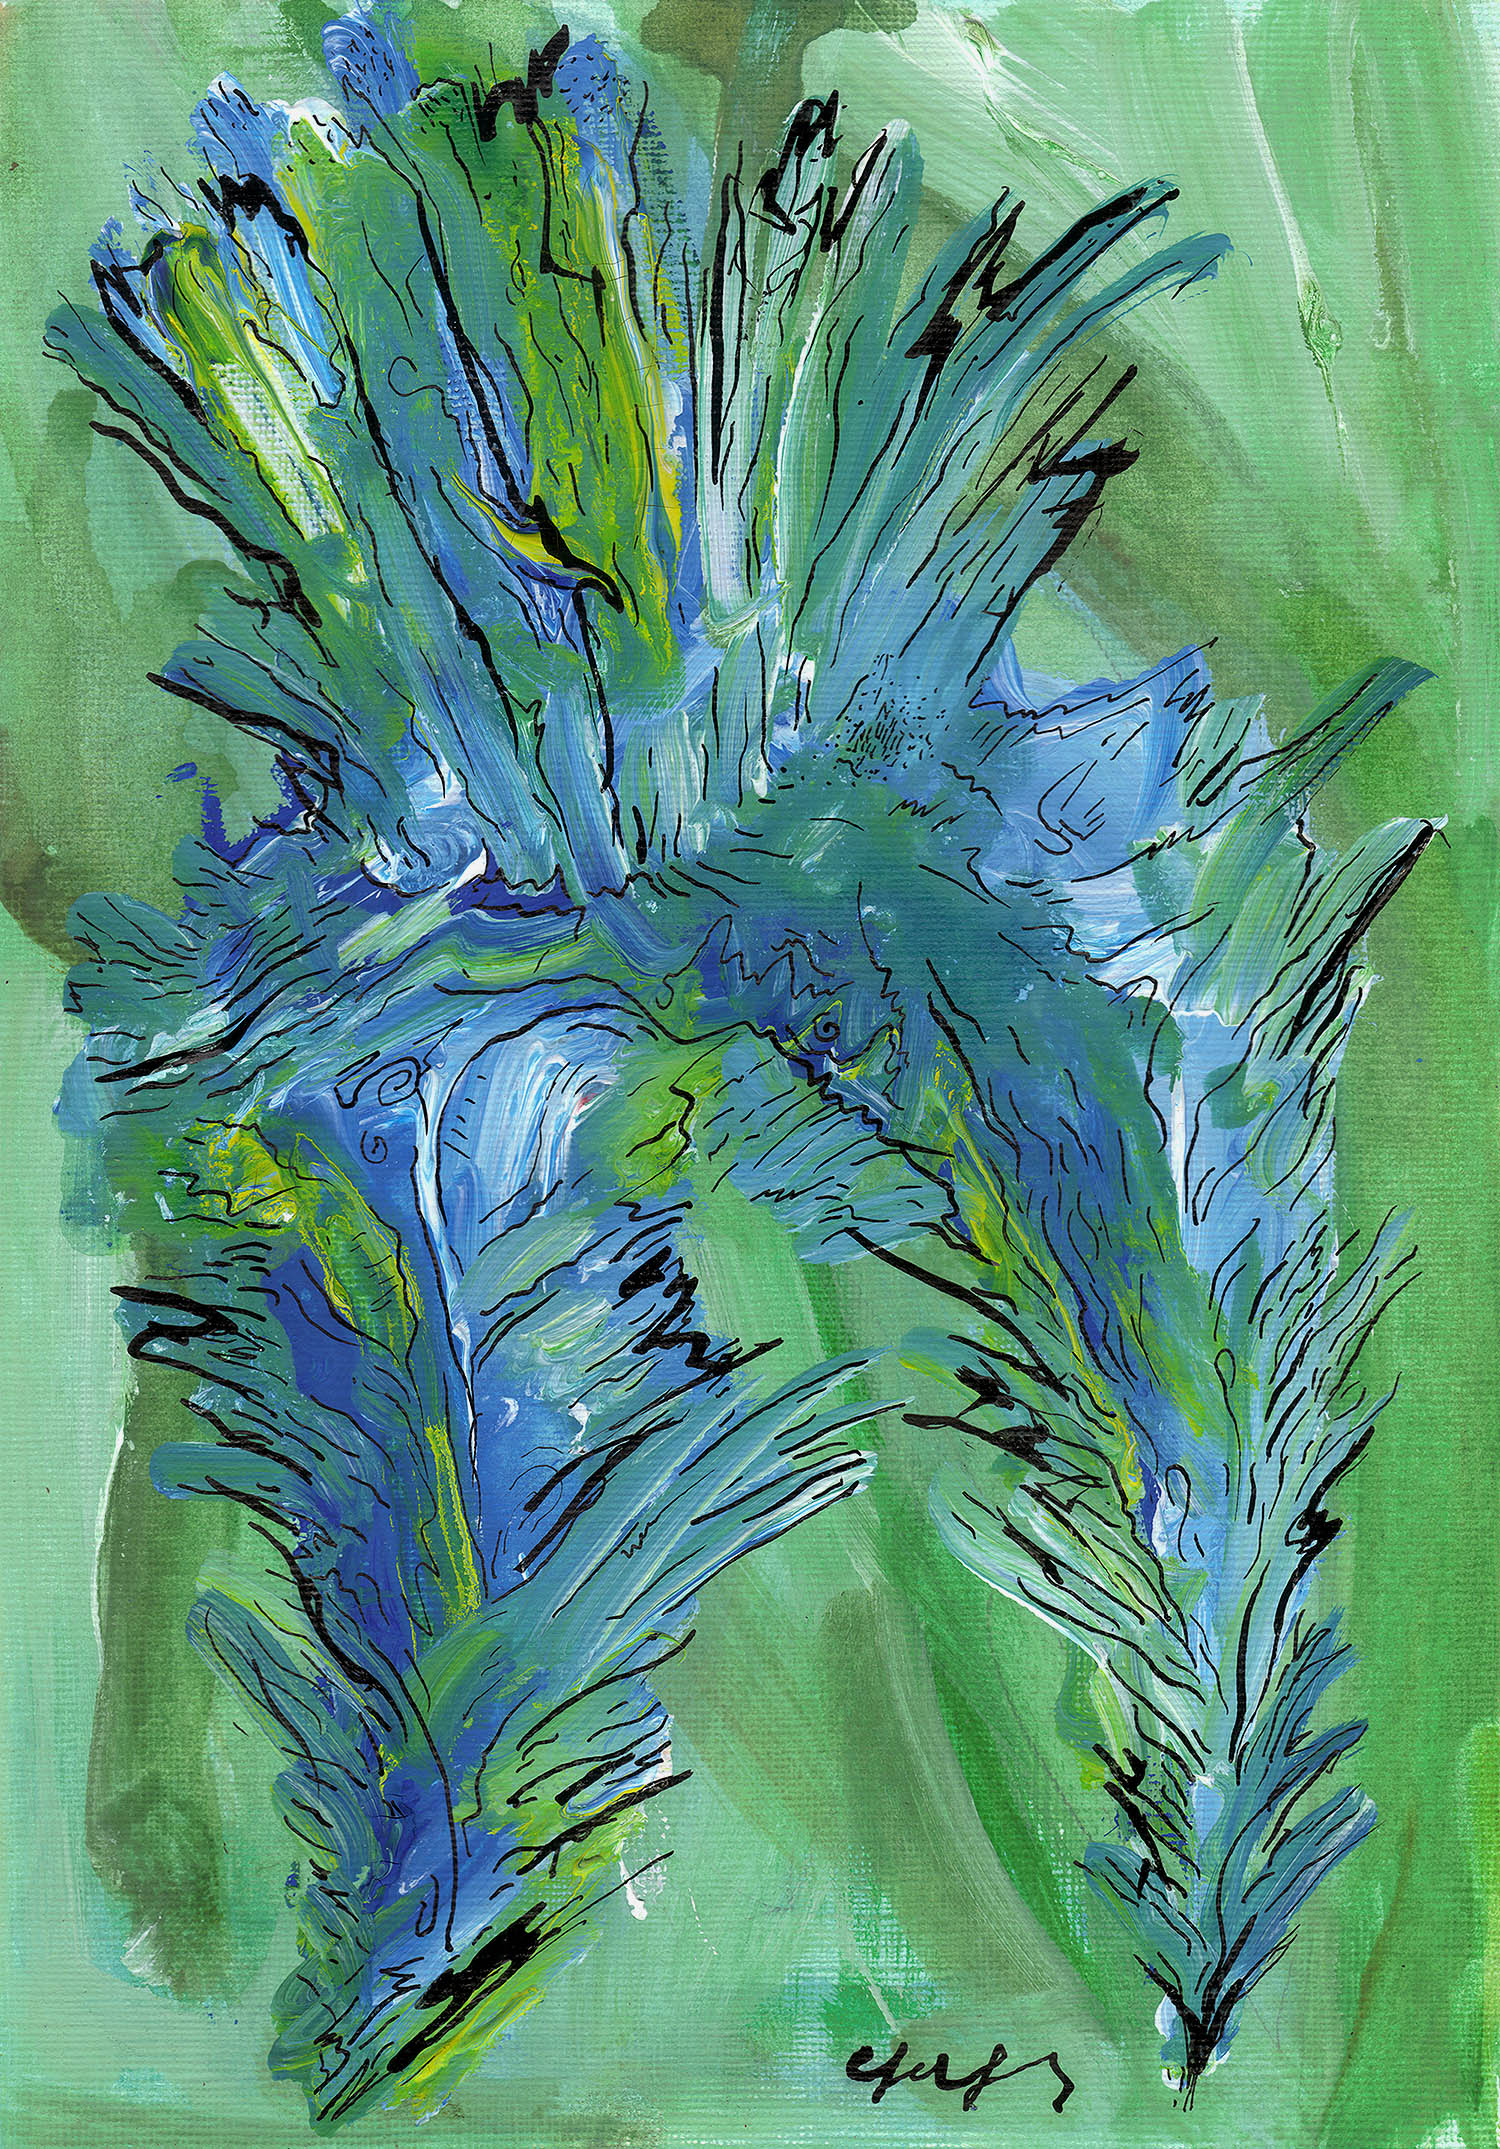 'Abstract Material: Light Blue', An Abstract Acrylic, Watercolor & Ink Blue & Green Artwork by Greek multidisciplinary artist Kostas Gogas.